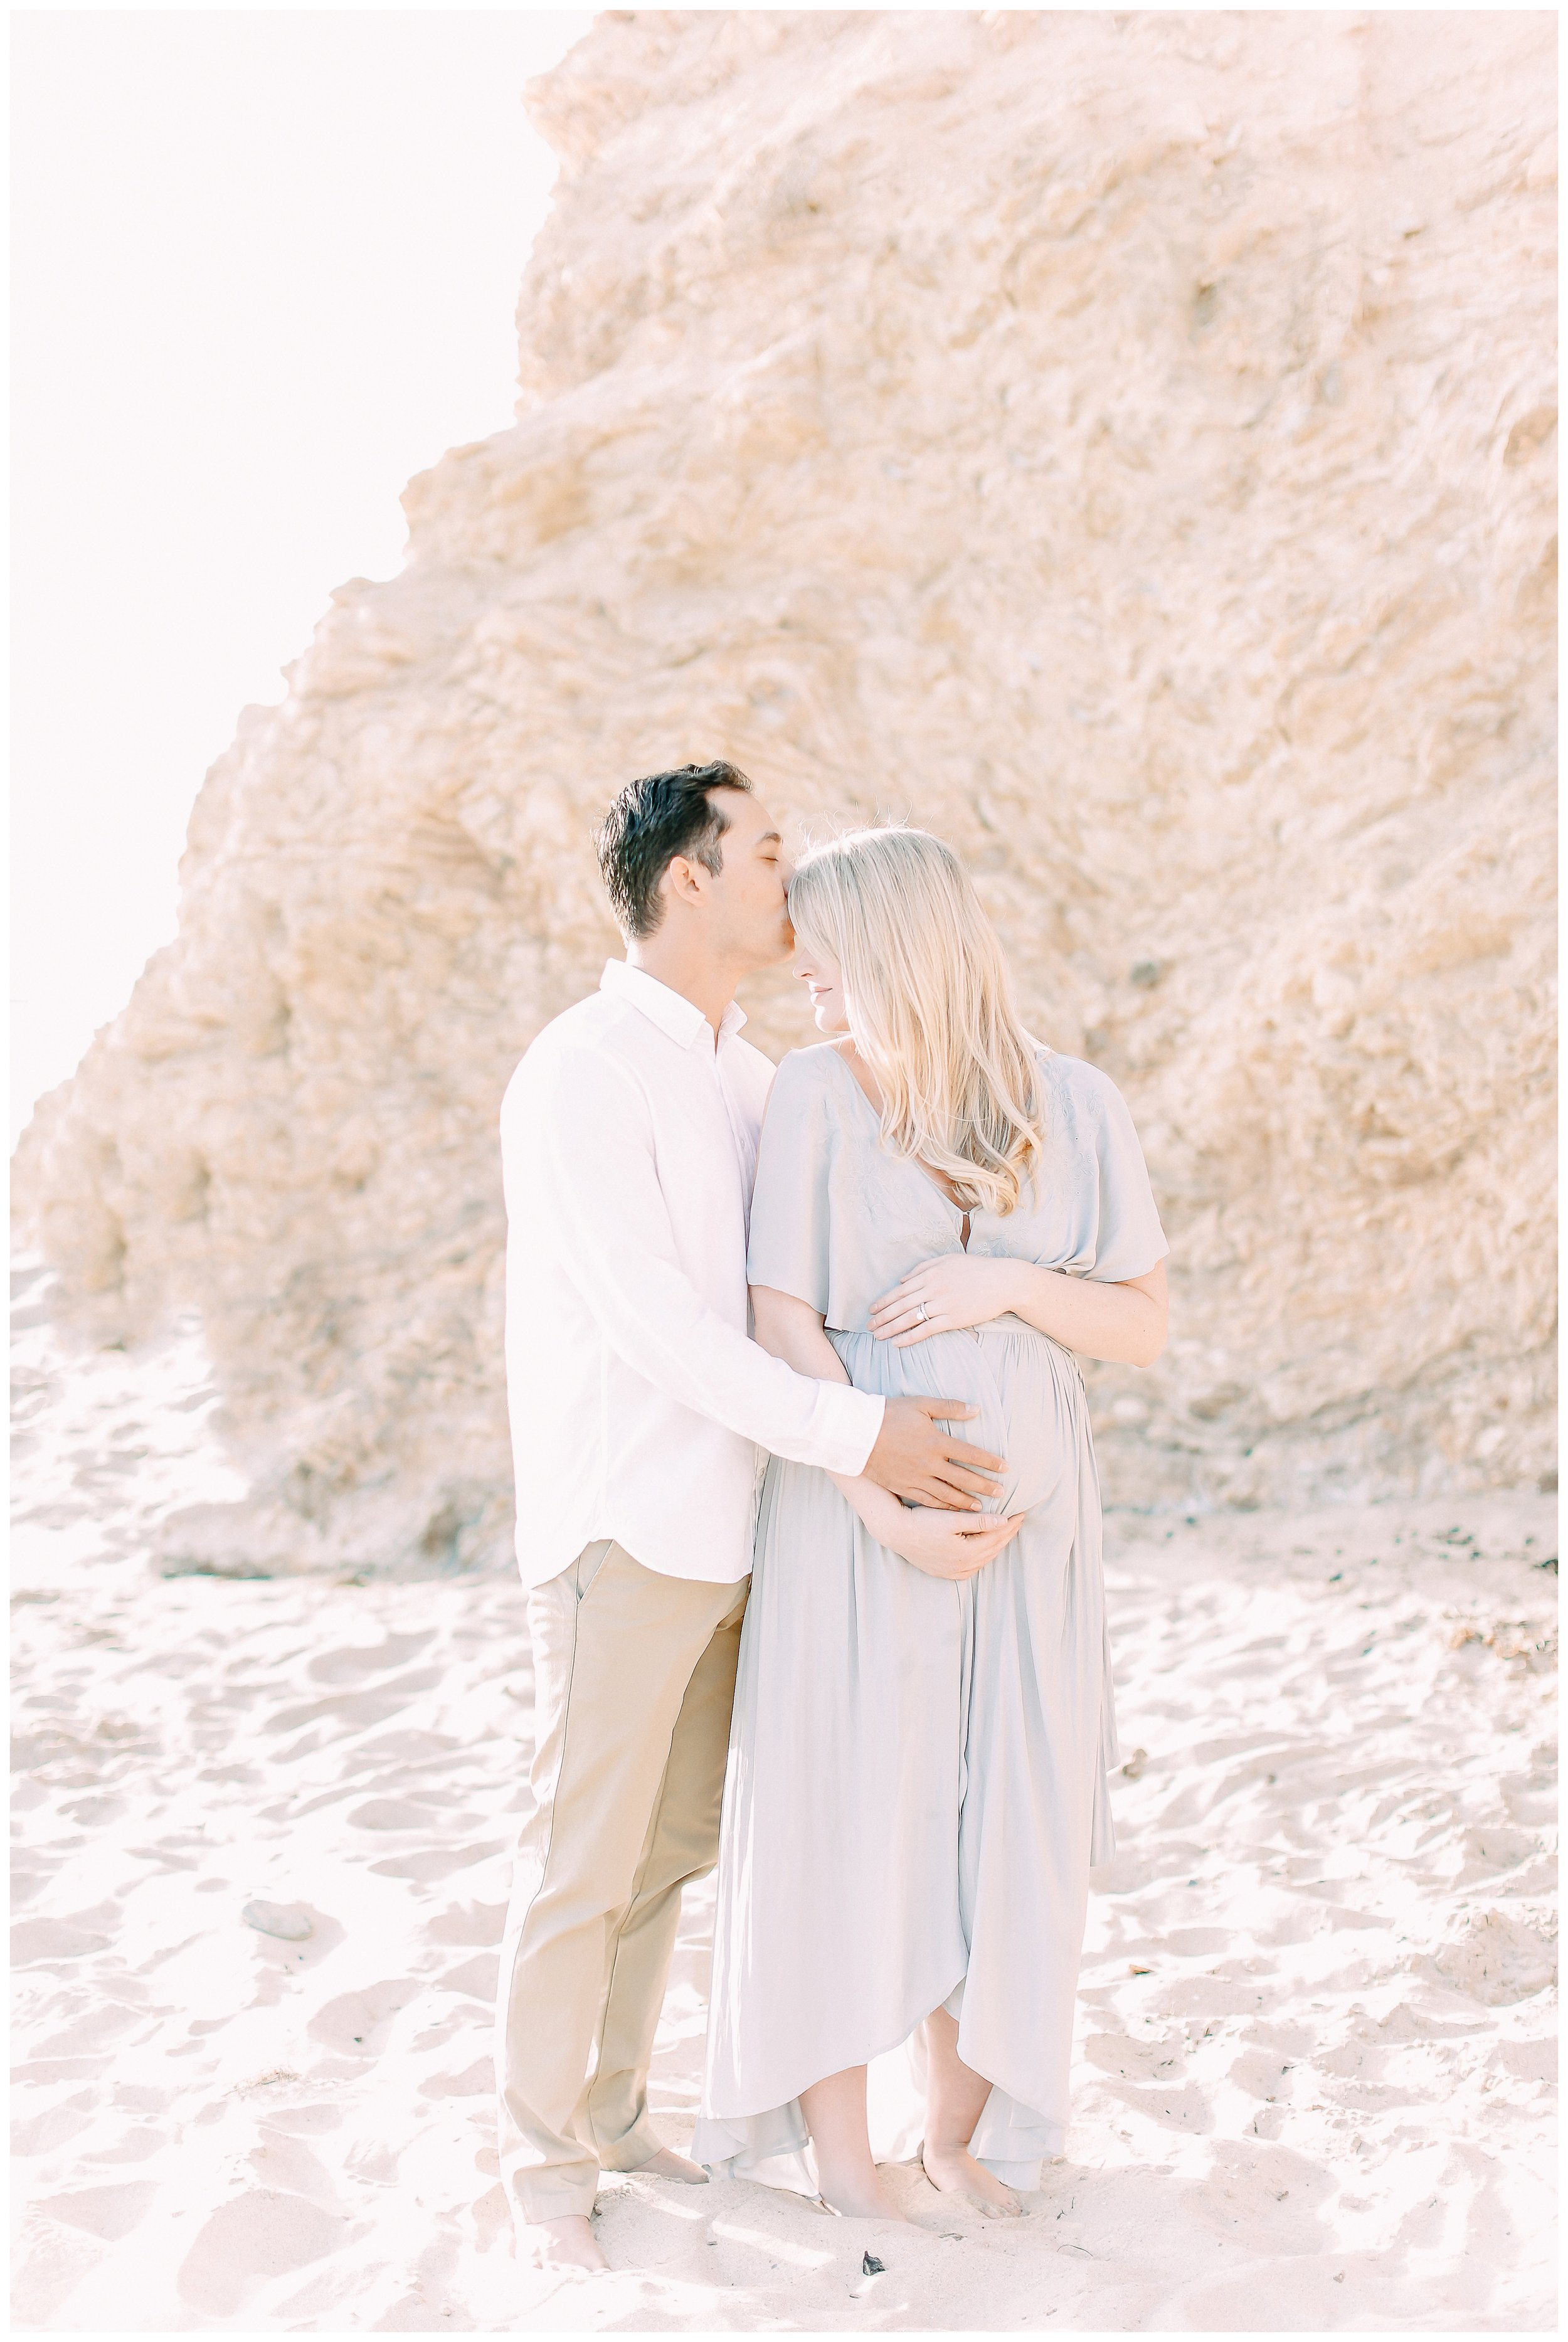 Little_Corona_Beach_Maternity_Session_Orange_county_family_photographer_cori_kleckner_photography_laguna_beach_family_session_0728.jpg